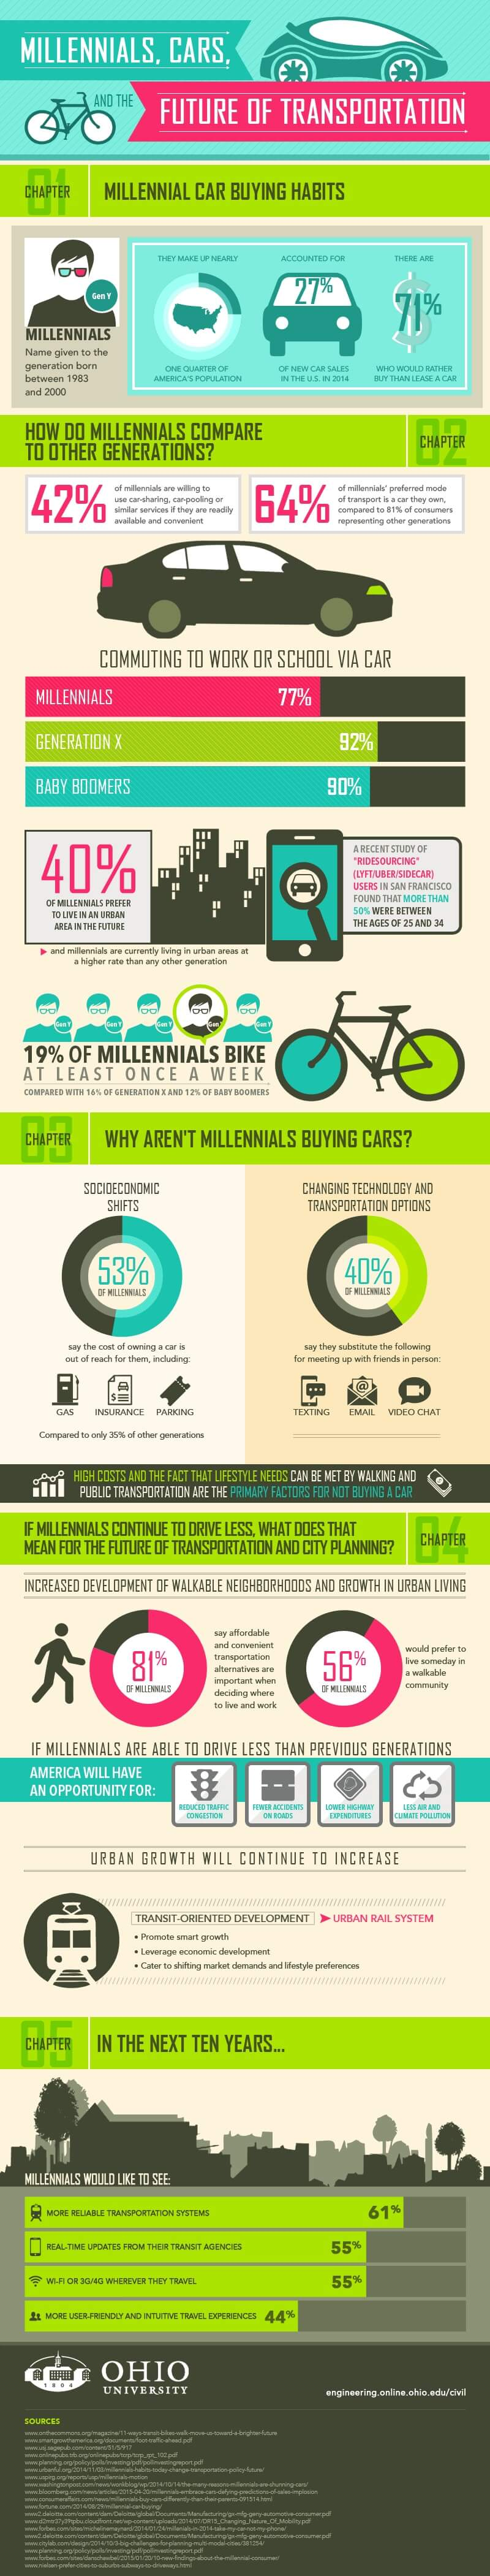 Millennials, Cars and the Future of Transportation infographic